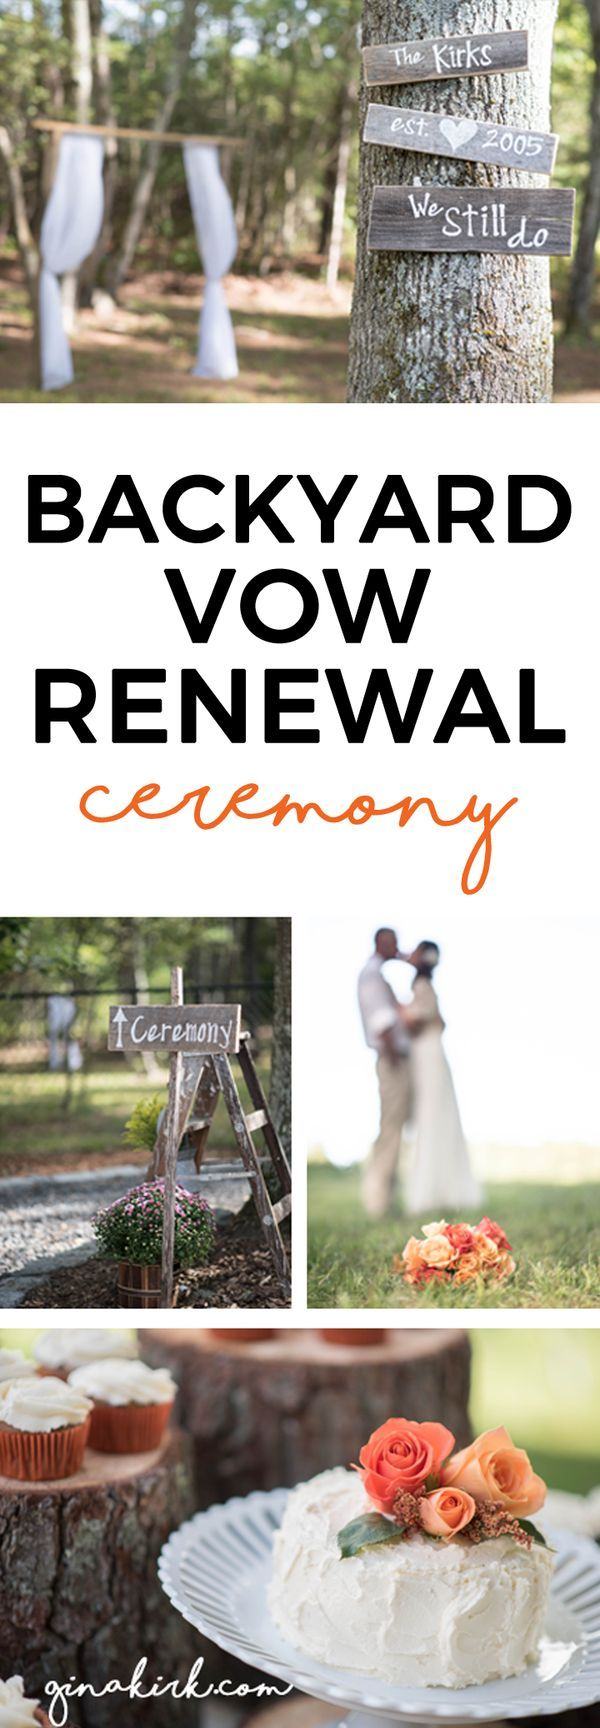 Backyard vow renewal rustic wedding idea